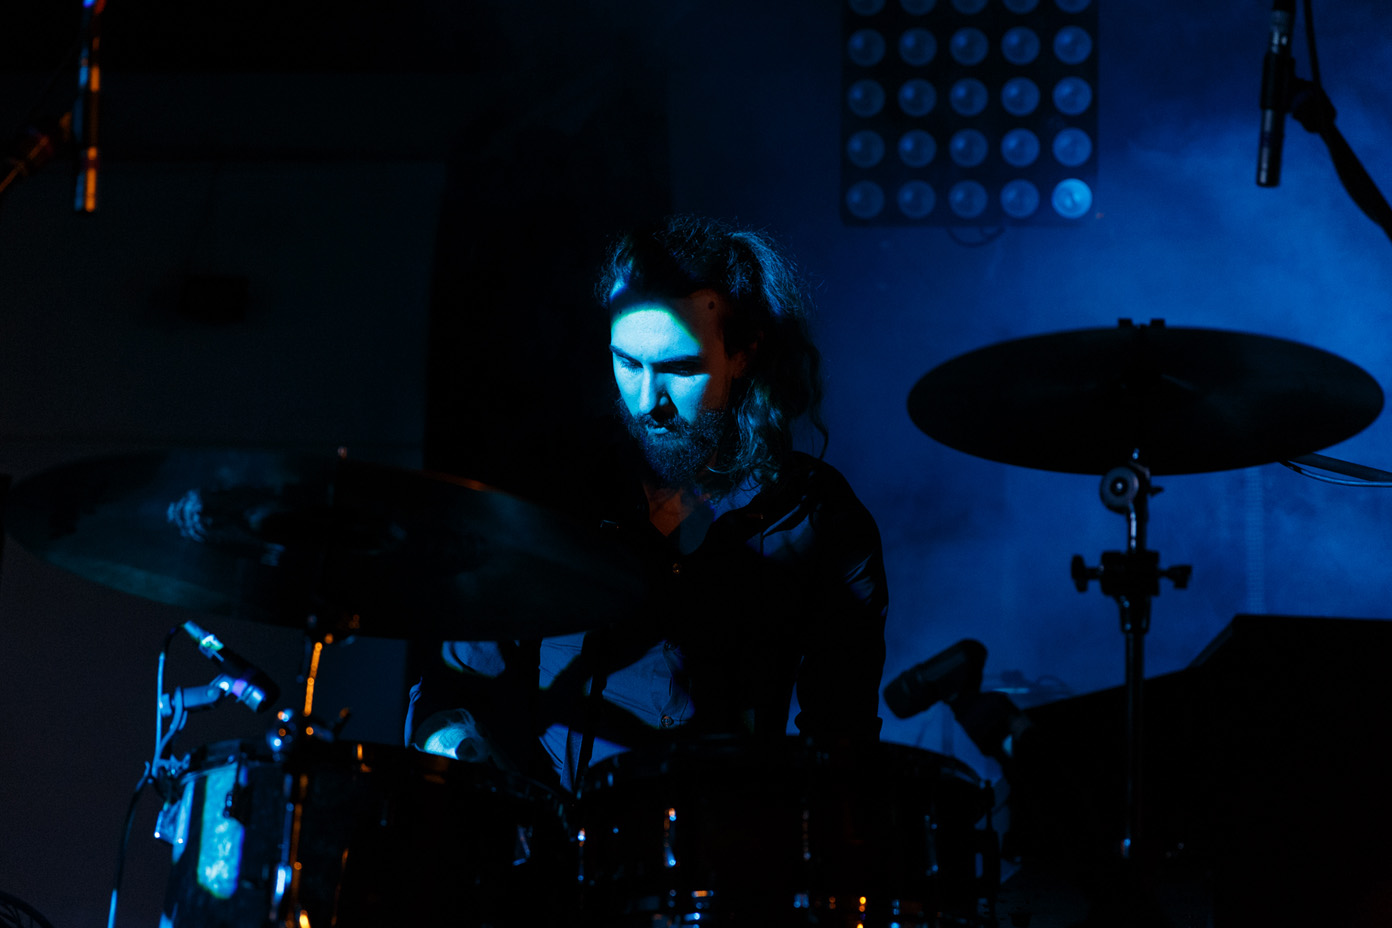 Jack Clark, drummer of Eyre Llew, at 2Q Festival 2017. Photo: Katy Blackwood